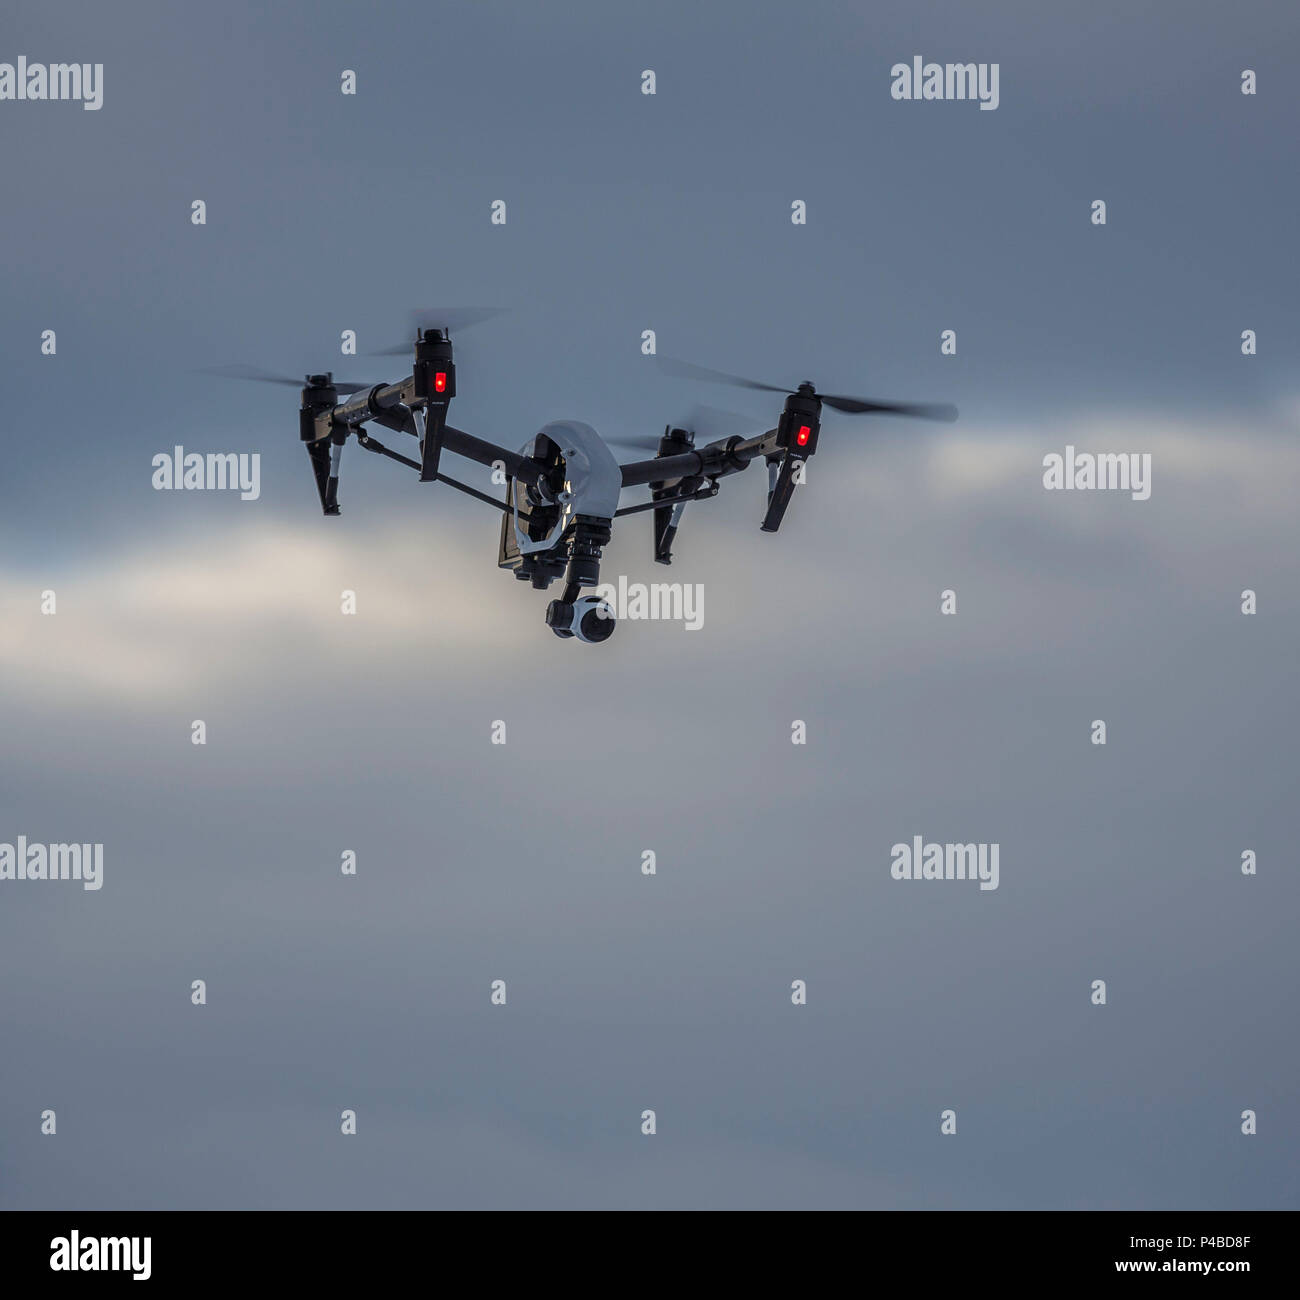 Radio controlled Drone with Camera. Eruption at the Holuhraun Fissure, Bardarbunga Volcano, Iceland Stock Photo